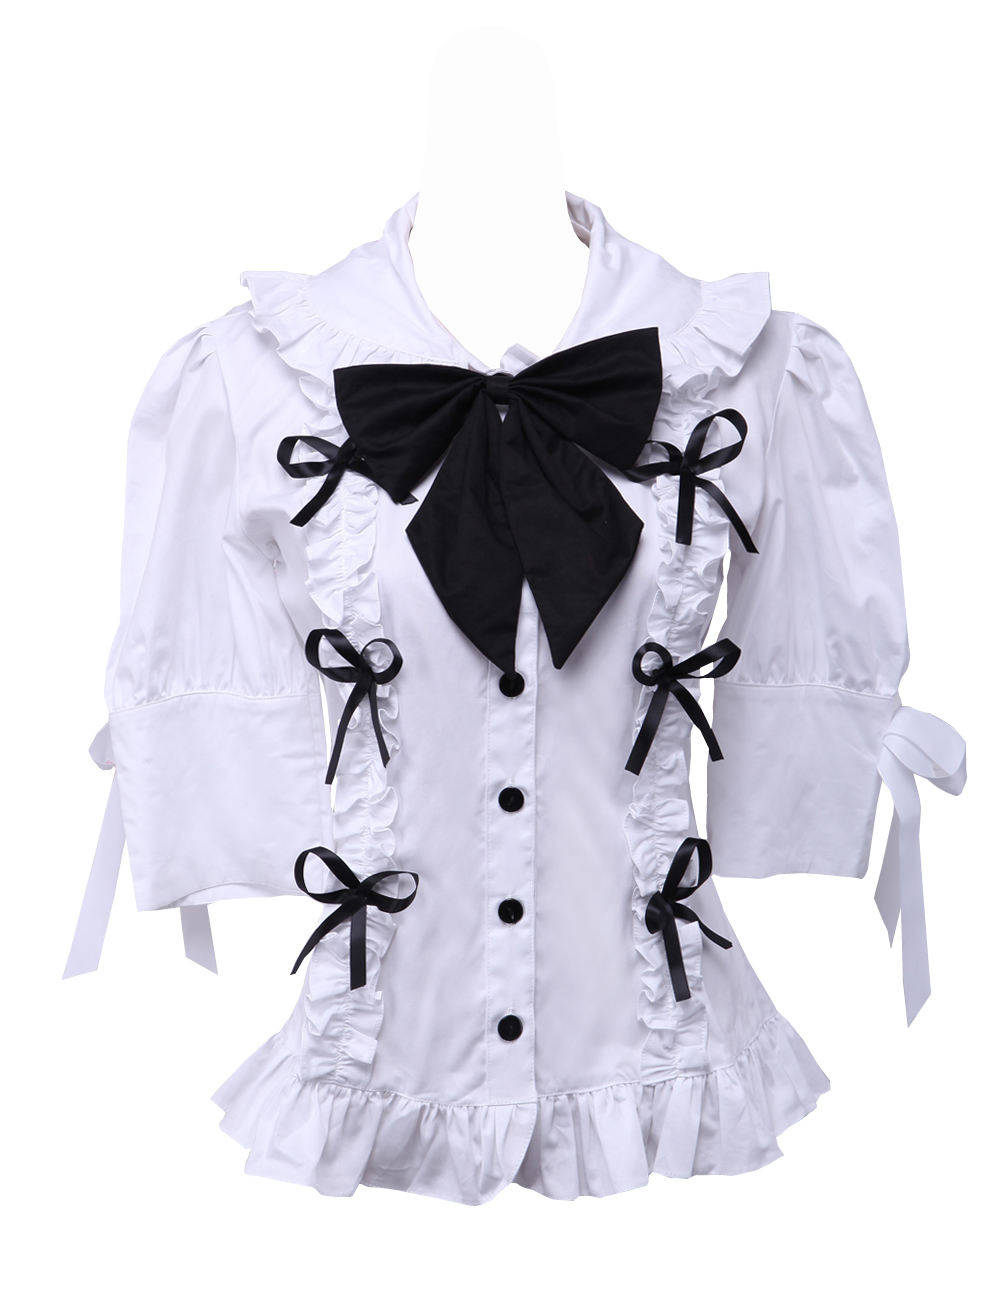 Primary image for White Cotton Lapel Balck Bow Lace Ruffle Retro Victorian Lolita Shirt Blouse